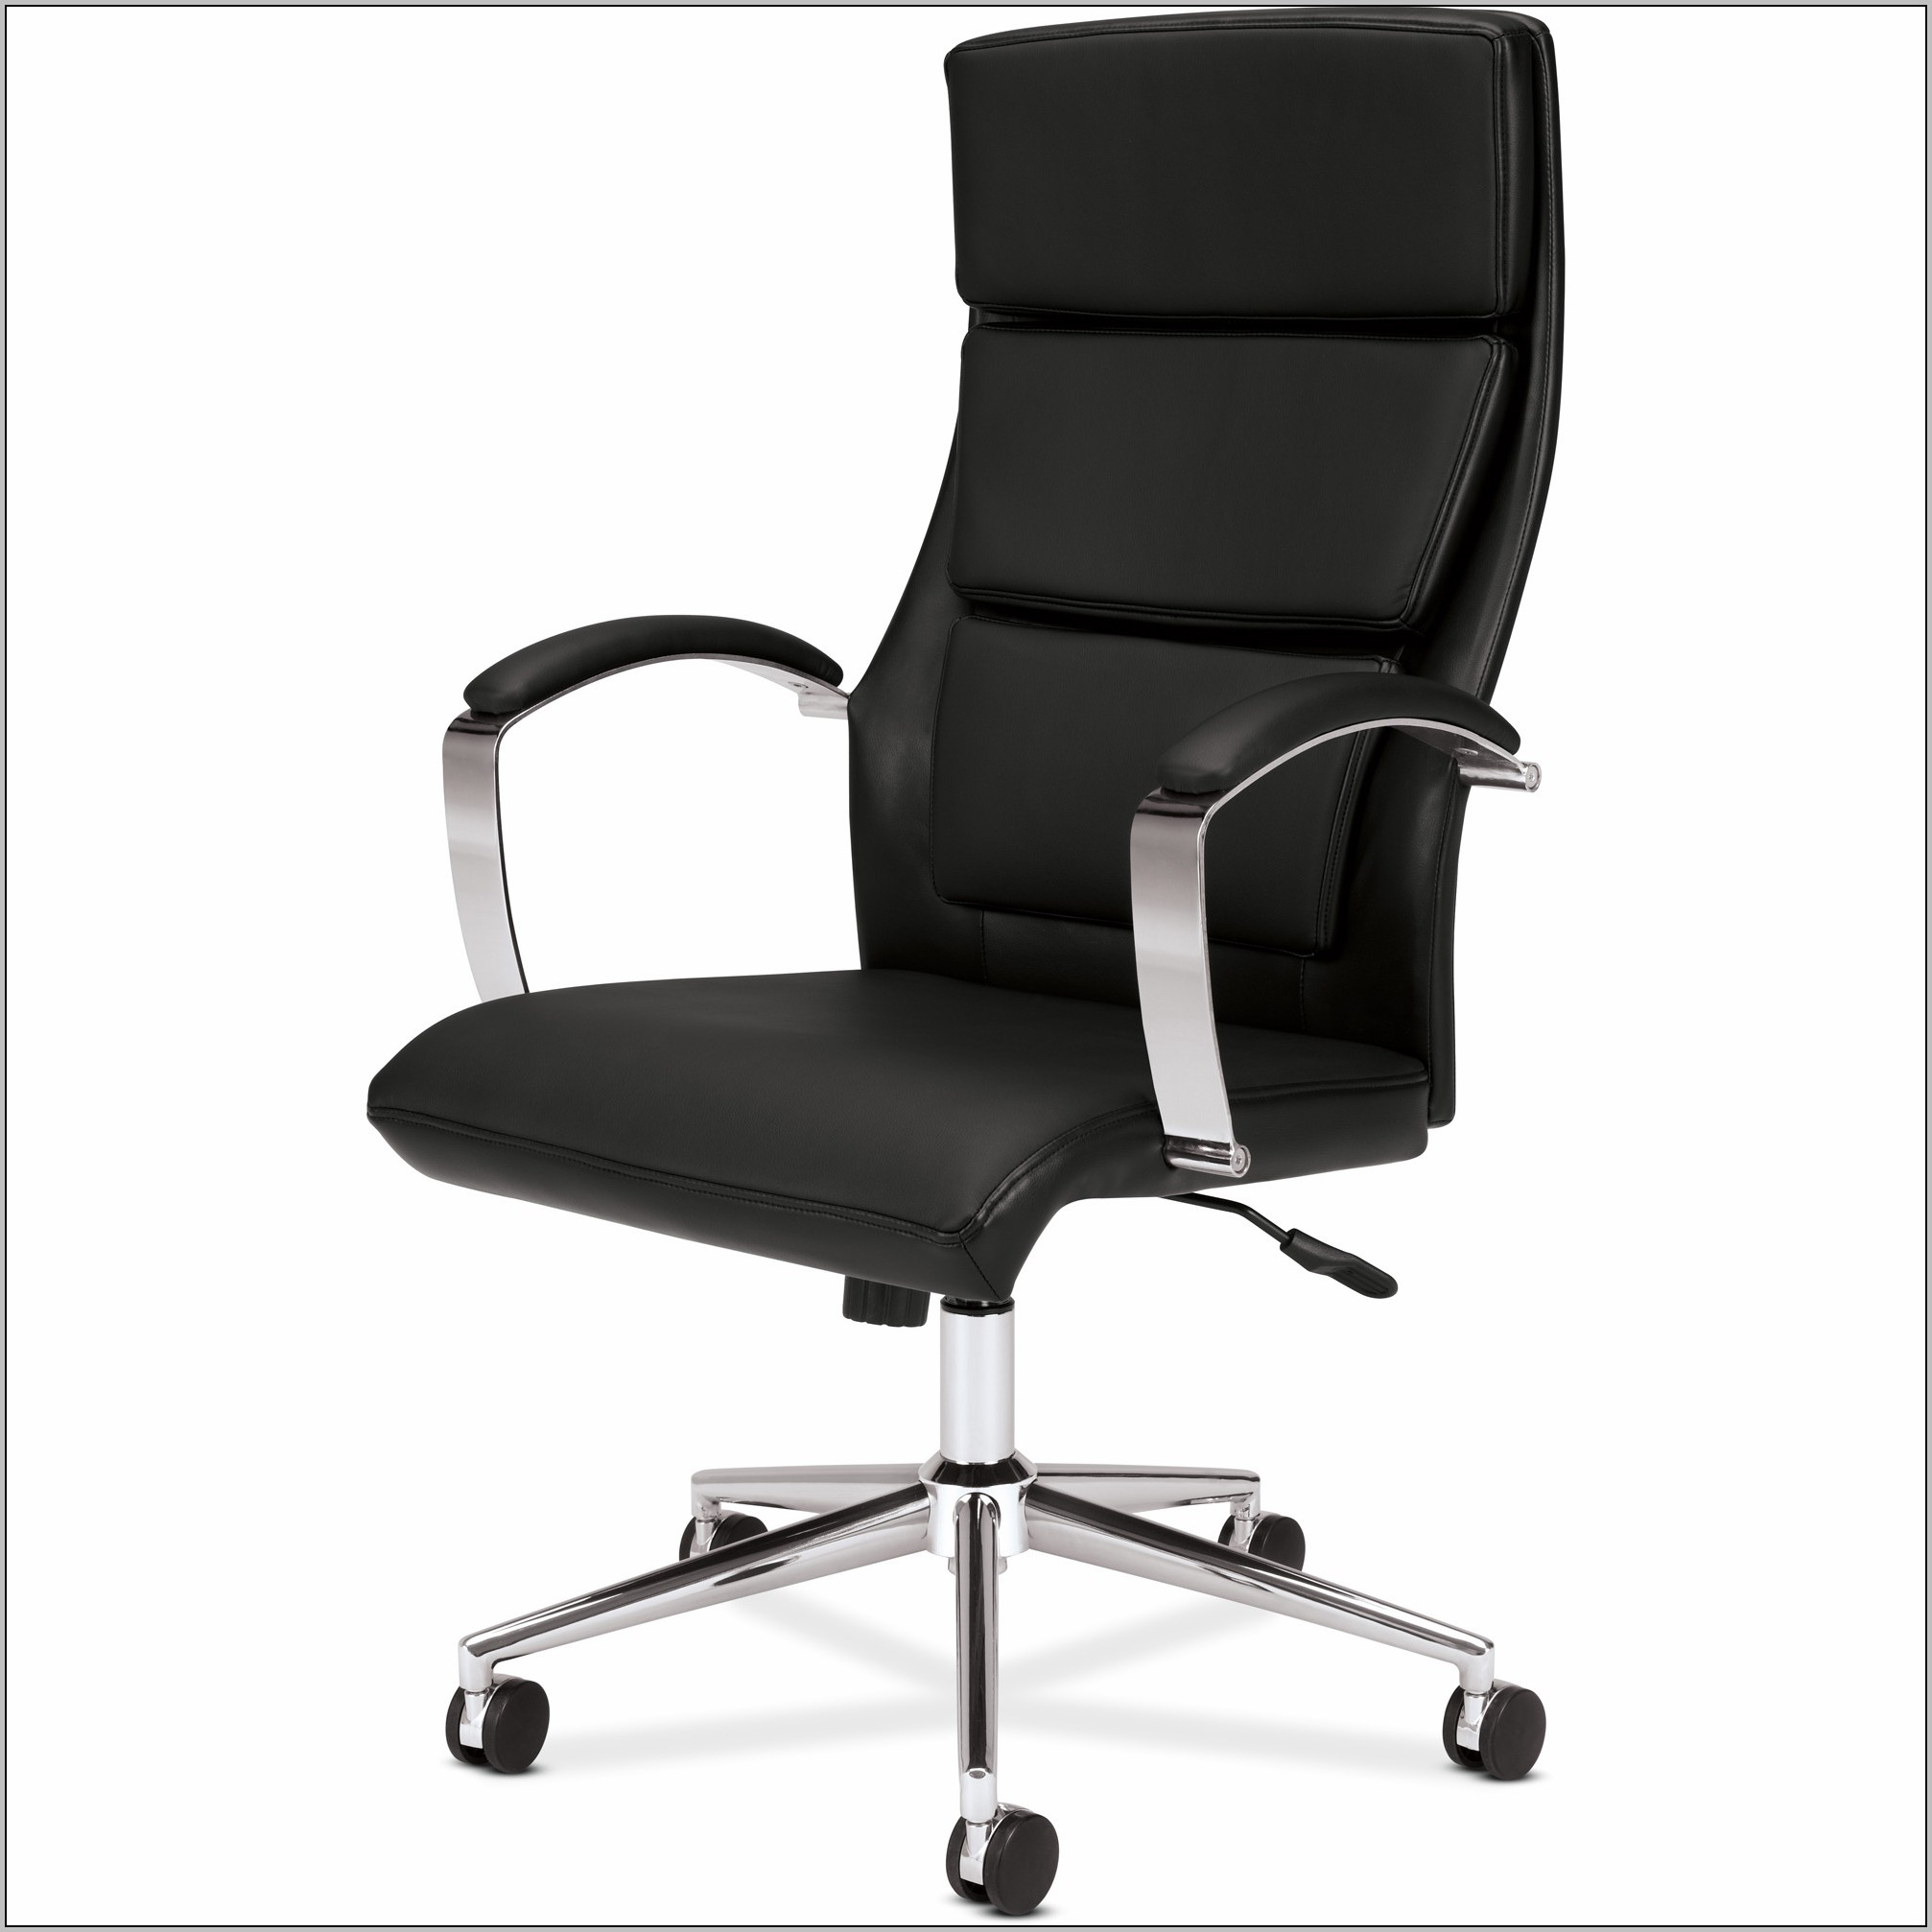 Desk Chair Staples Staples Office Desk Chair Download Page Home Design